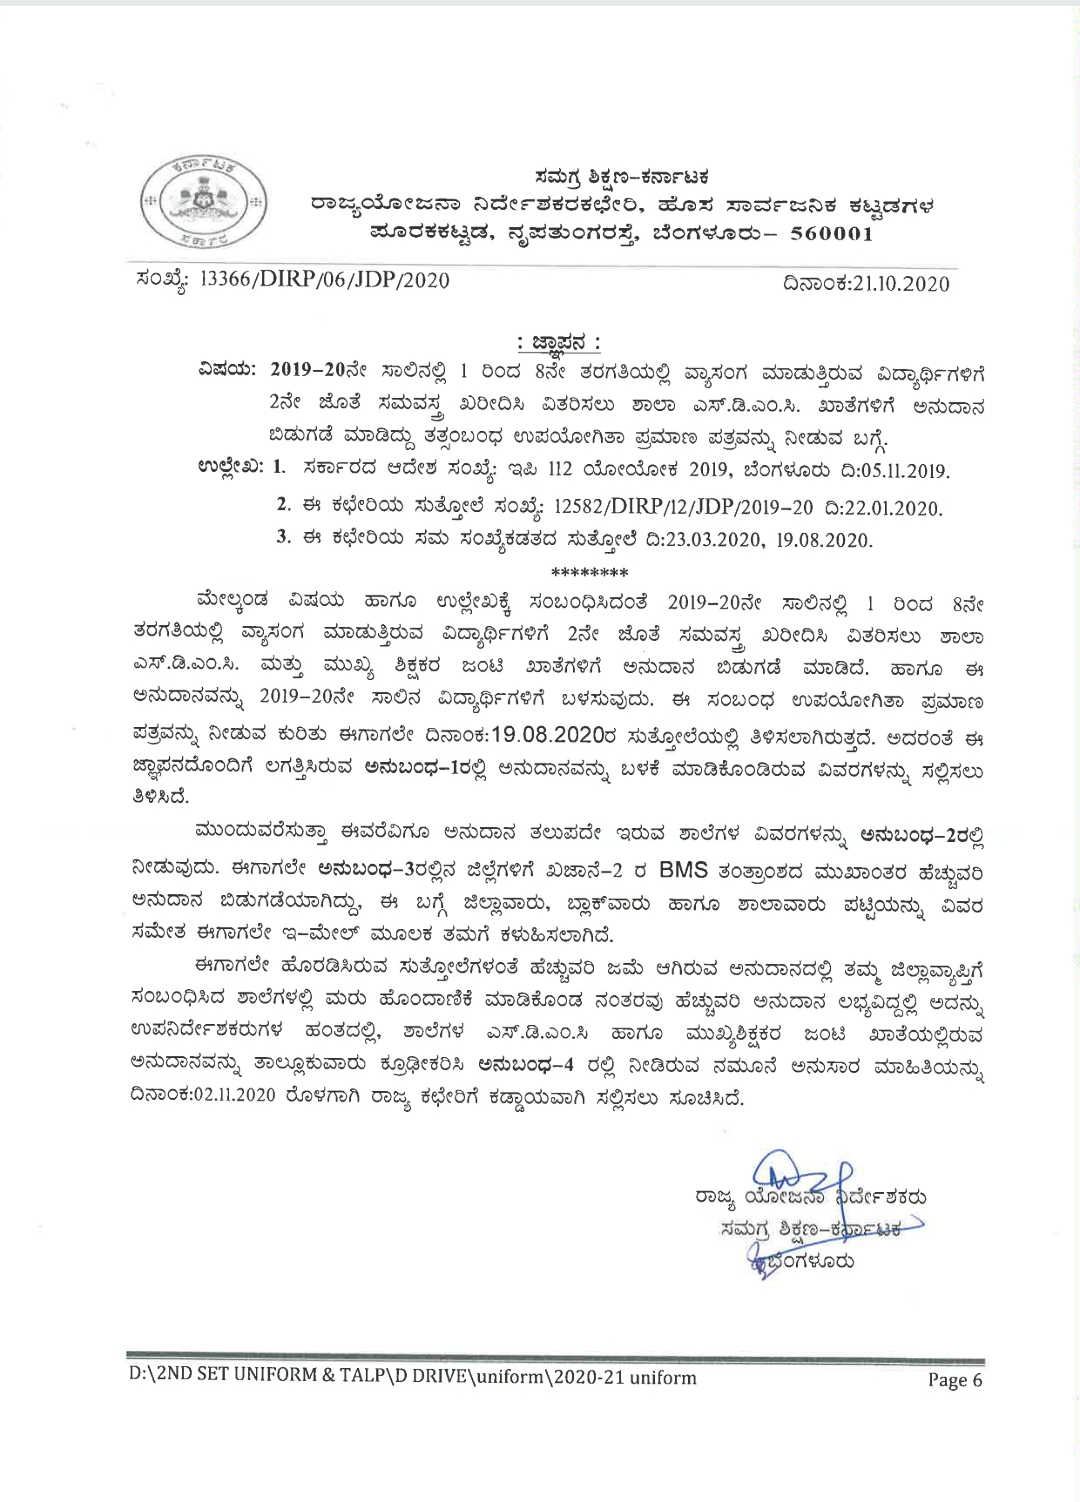 Issuing grants to S, D, M, C Accounts for the purpose of purchasing and distributing uniforms with 2nd to students studying in Class 1 to 8 in the year 2019-20